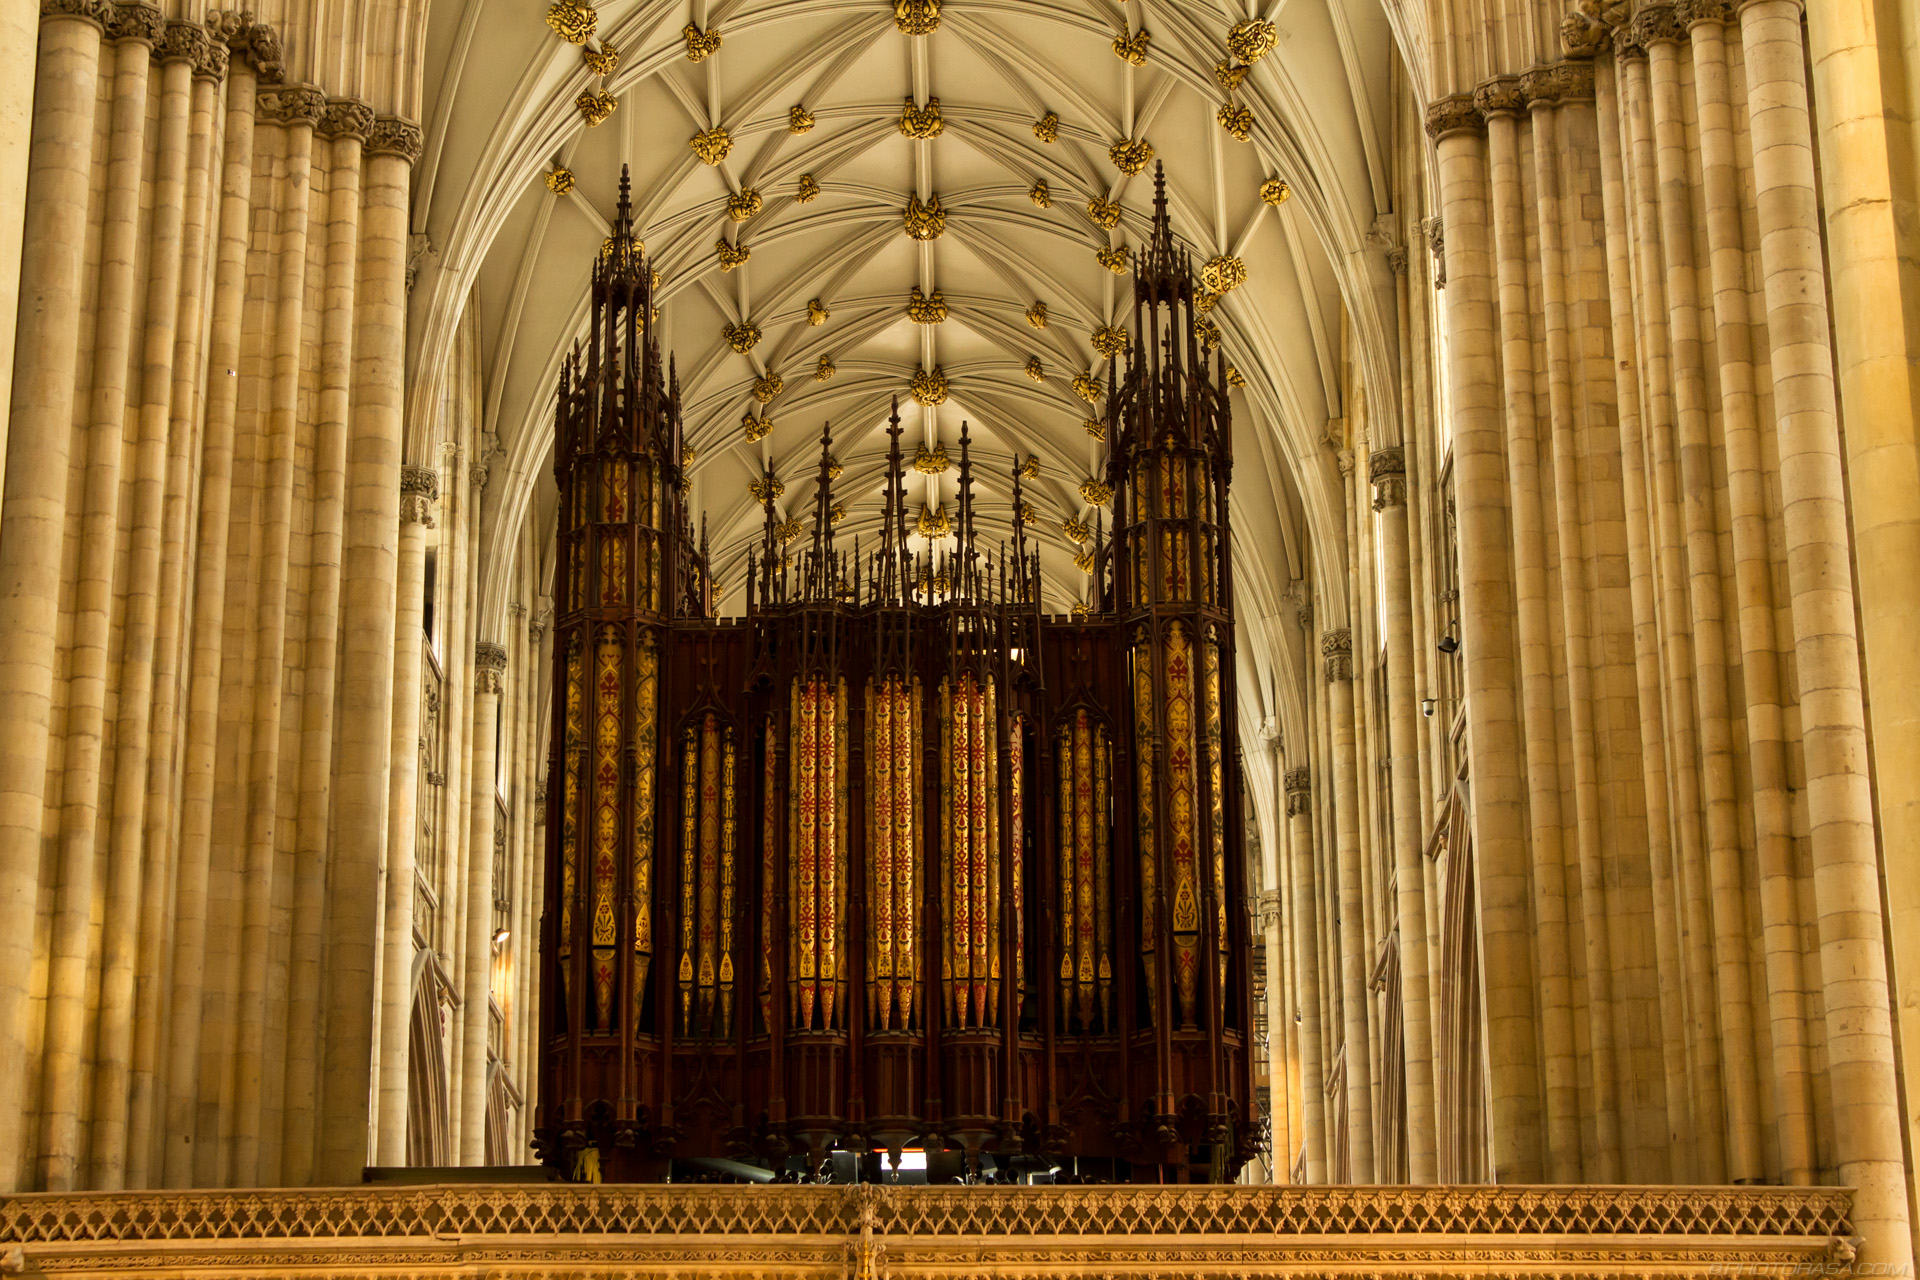 https://photorasa.com/yorkminster-cathedral/decorative-organ/